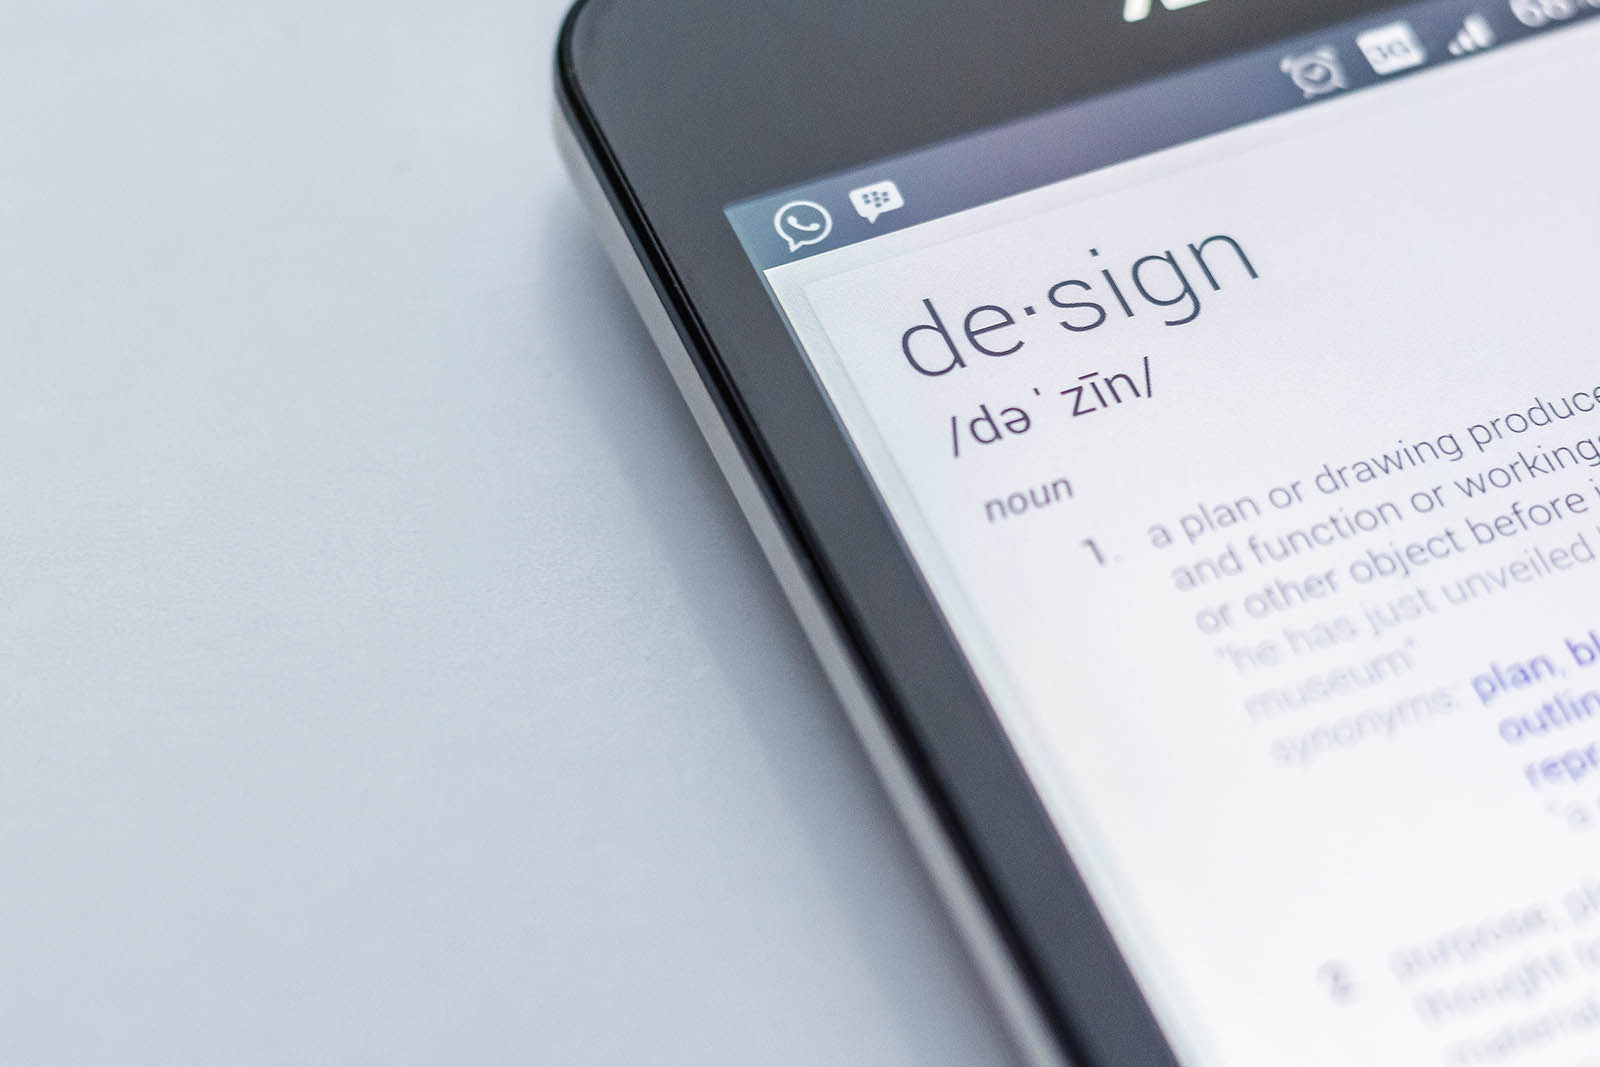 Comparison between UI Design, UX Design and Interface Design